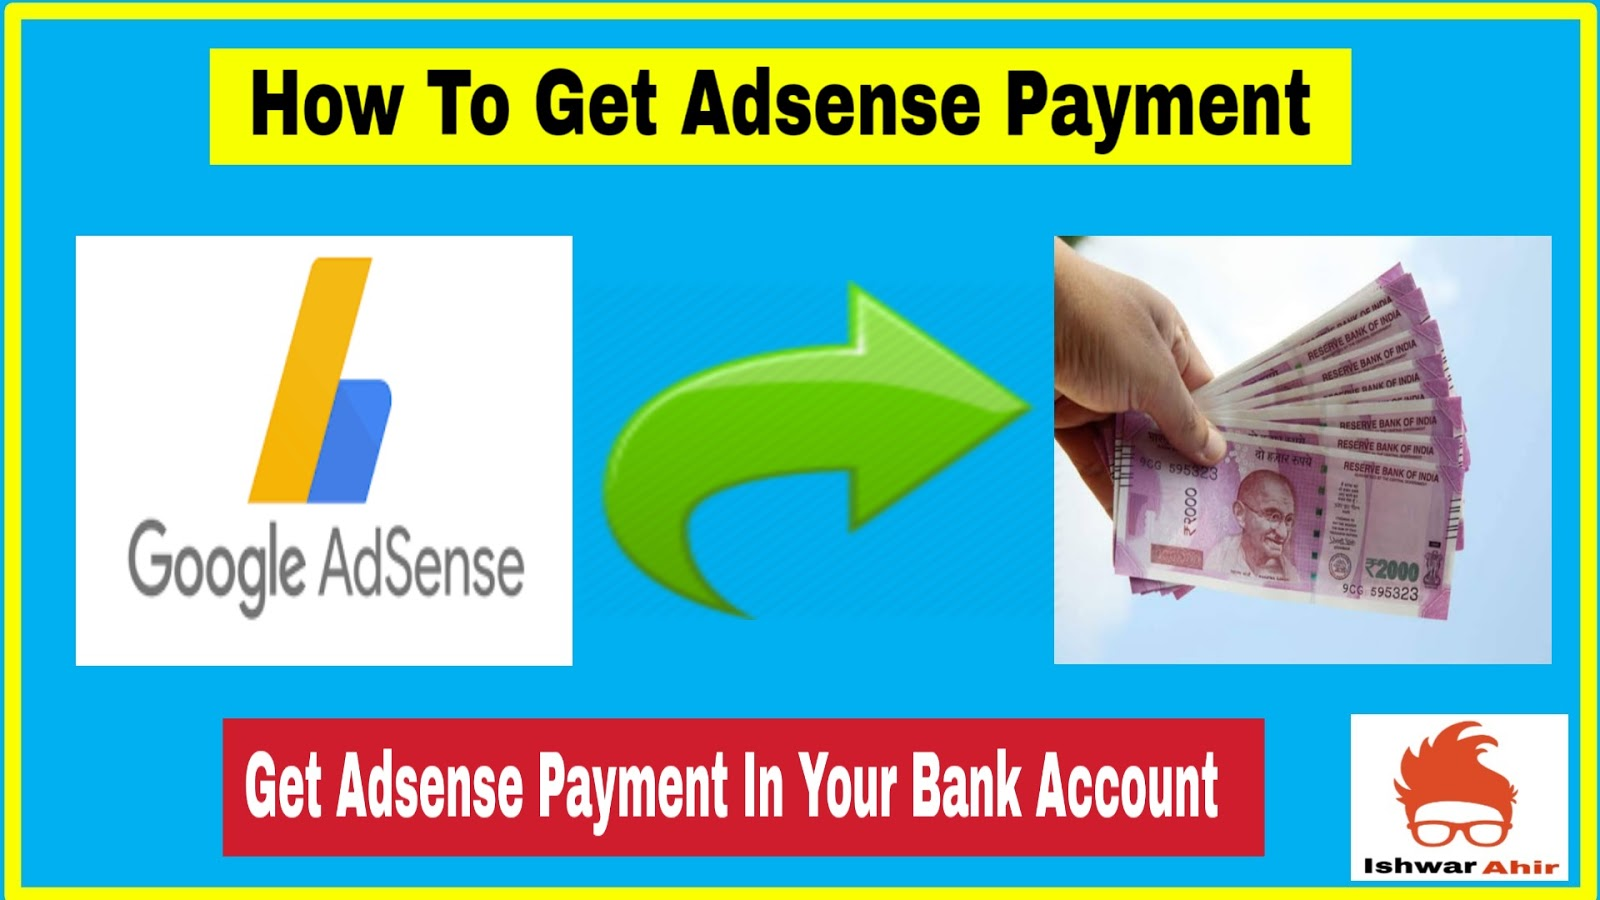 How to Get Adsense Payment